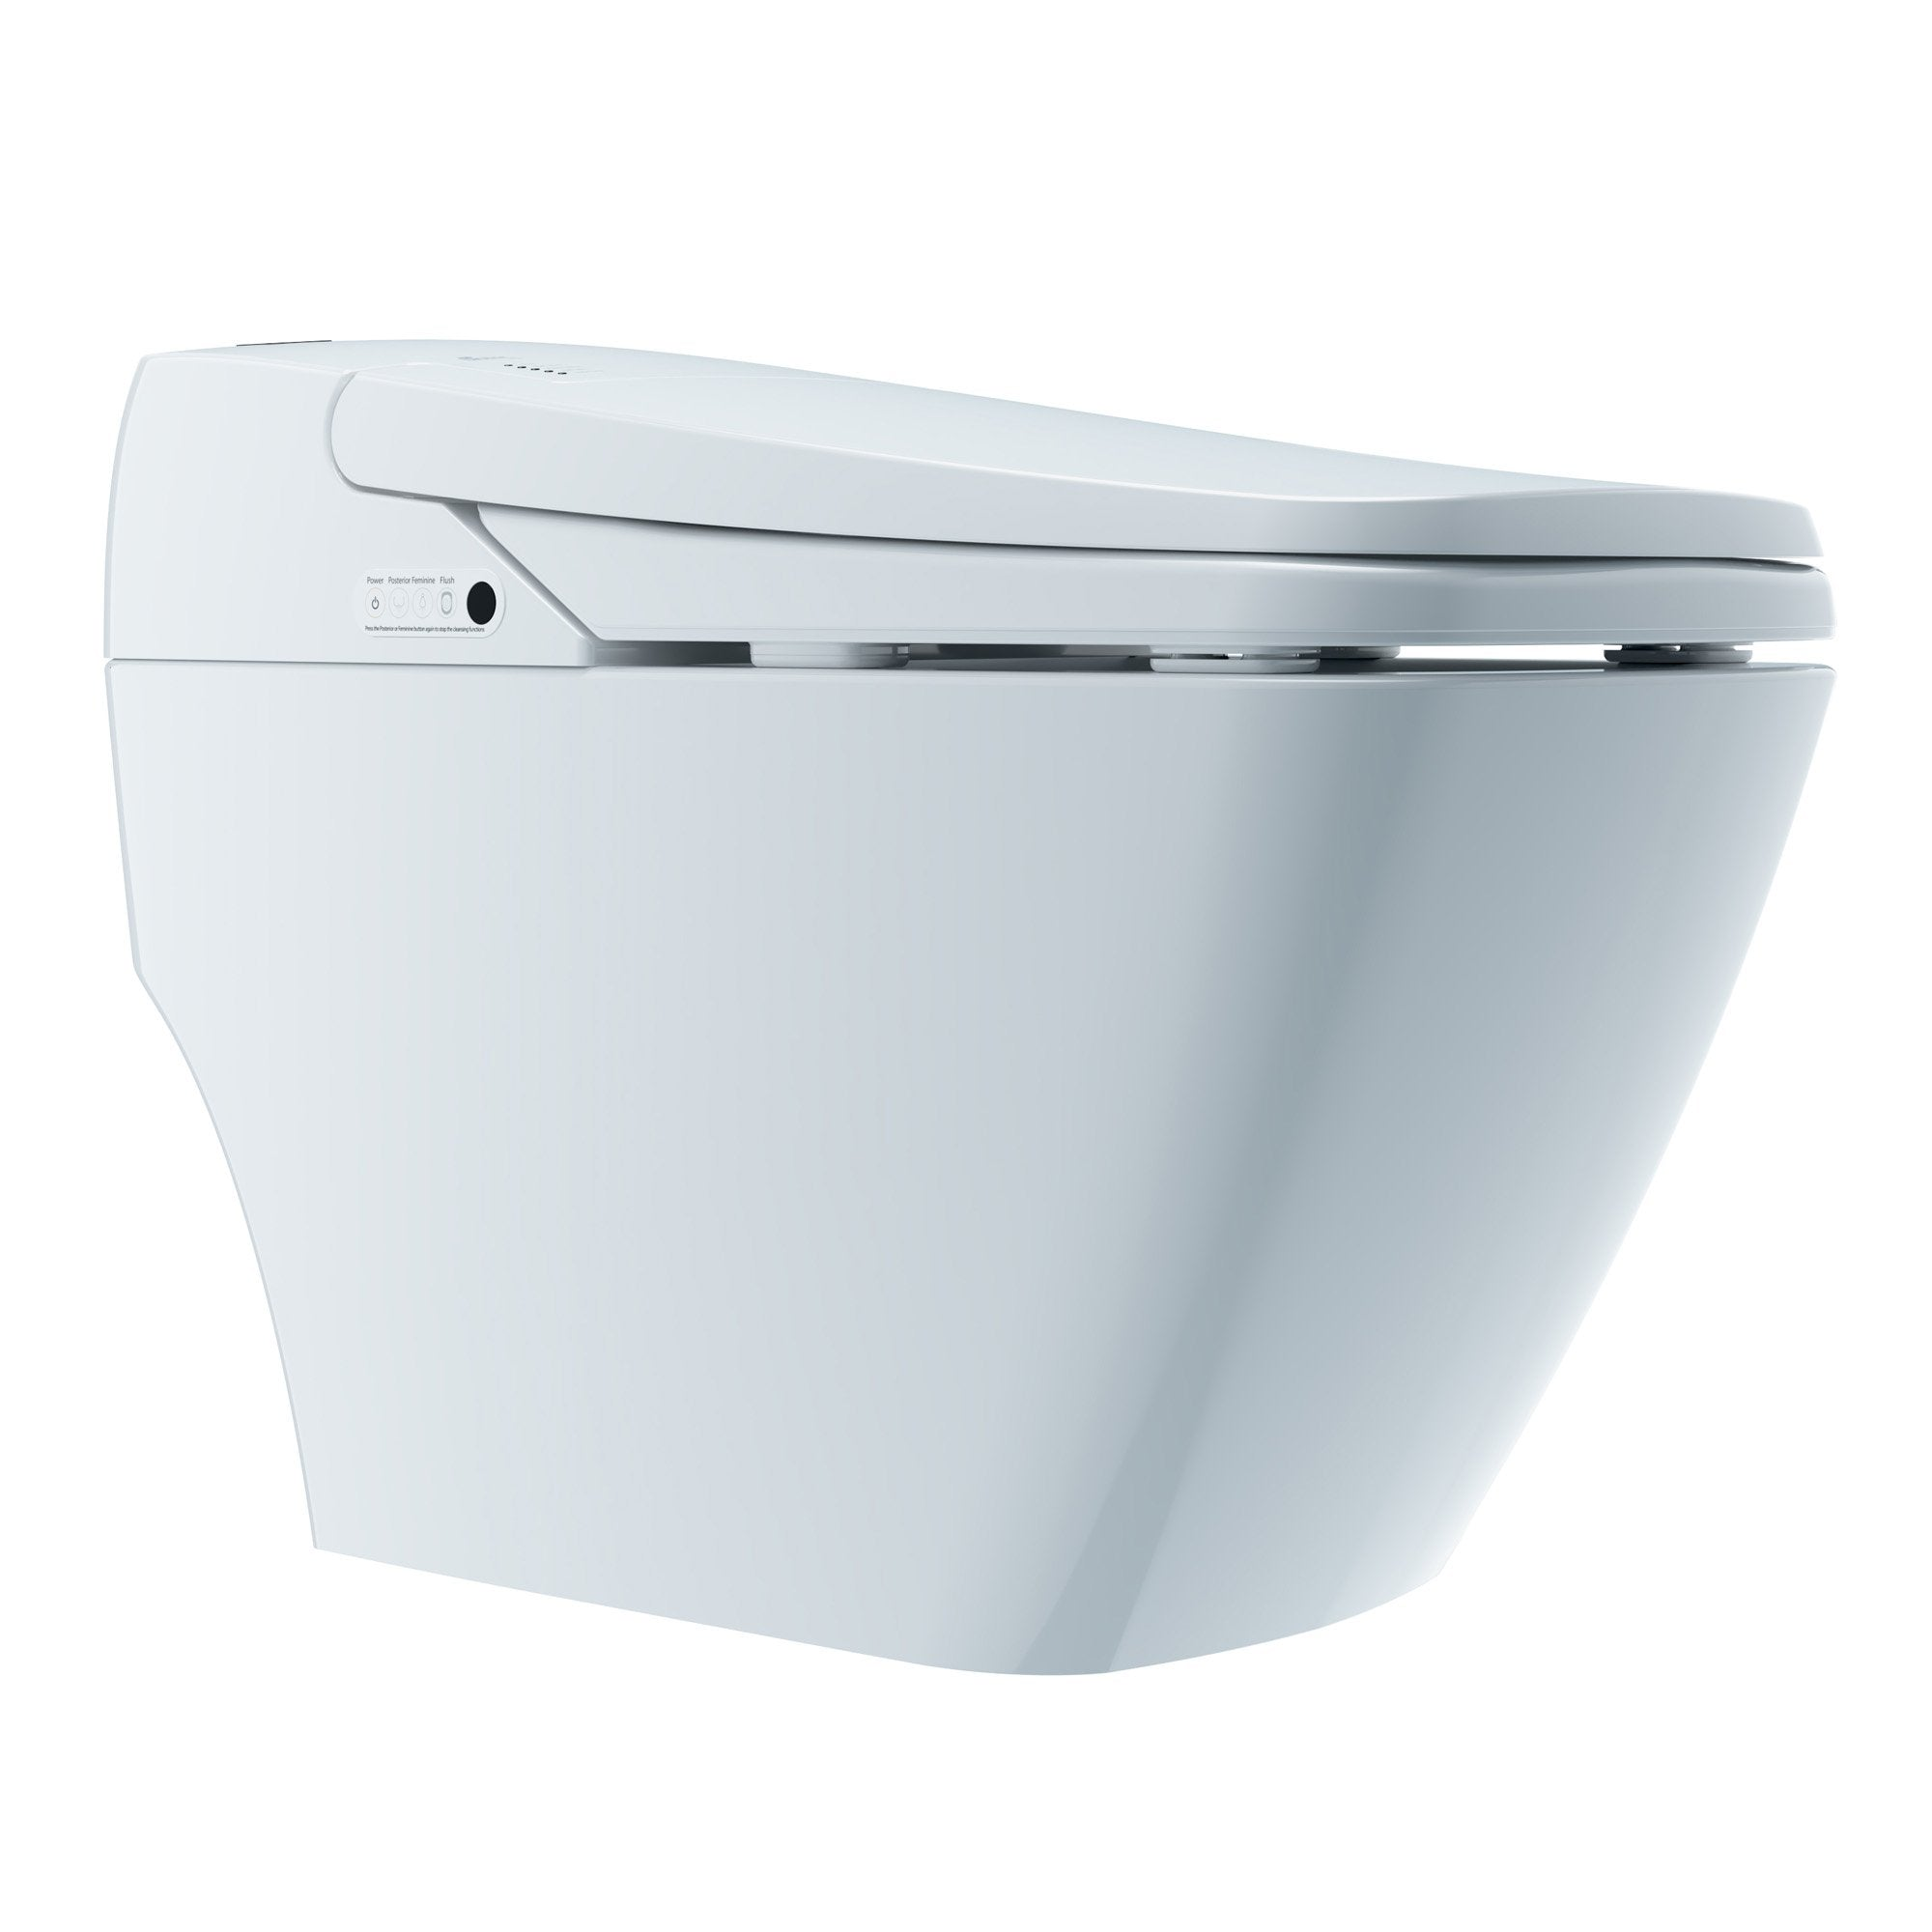 Bio Bidet Prodigy Advanced Smart Toilet in White